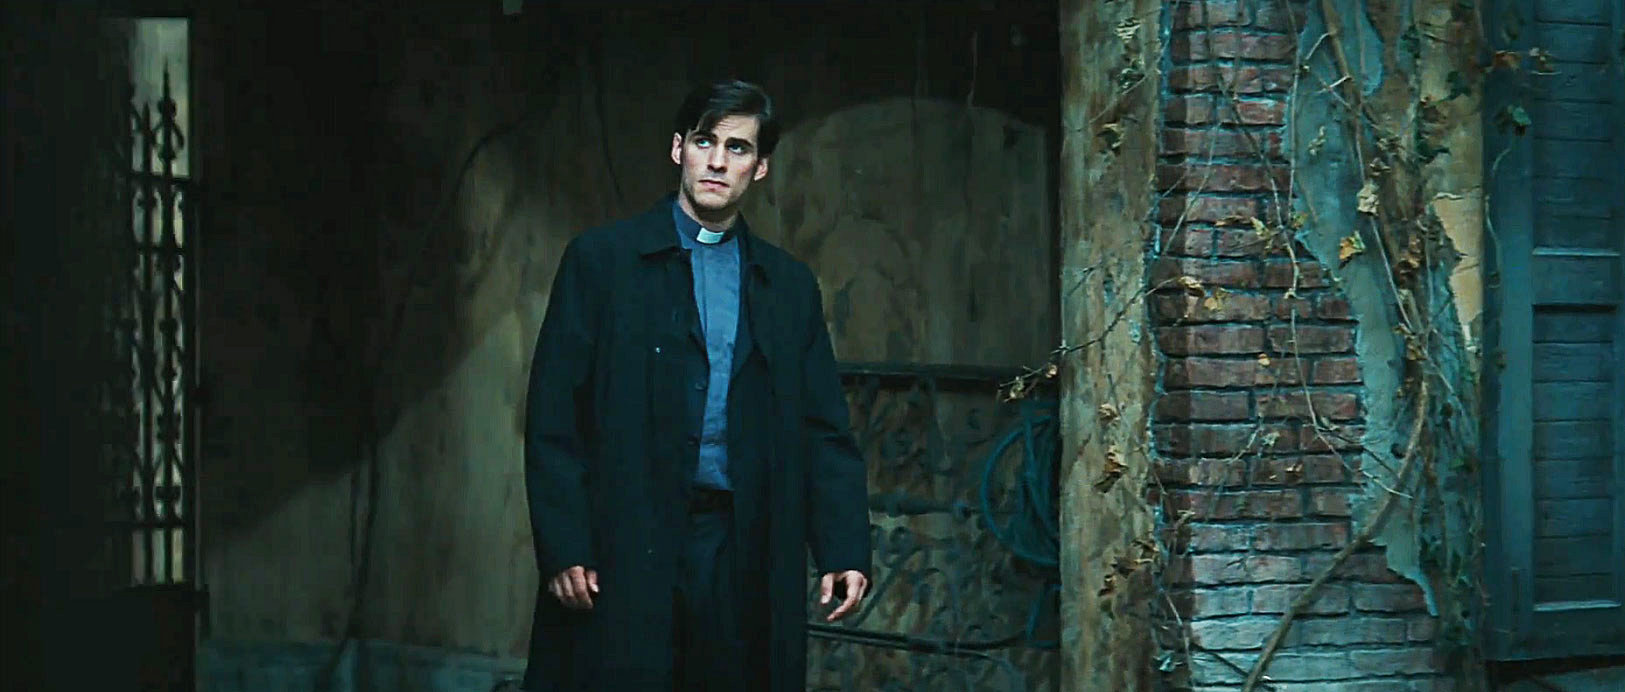 Colin O'Donoghue stars as Michael Kovak in Warner Bros. Pictures' The Rite (2011)